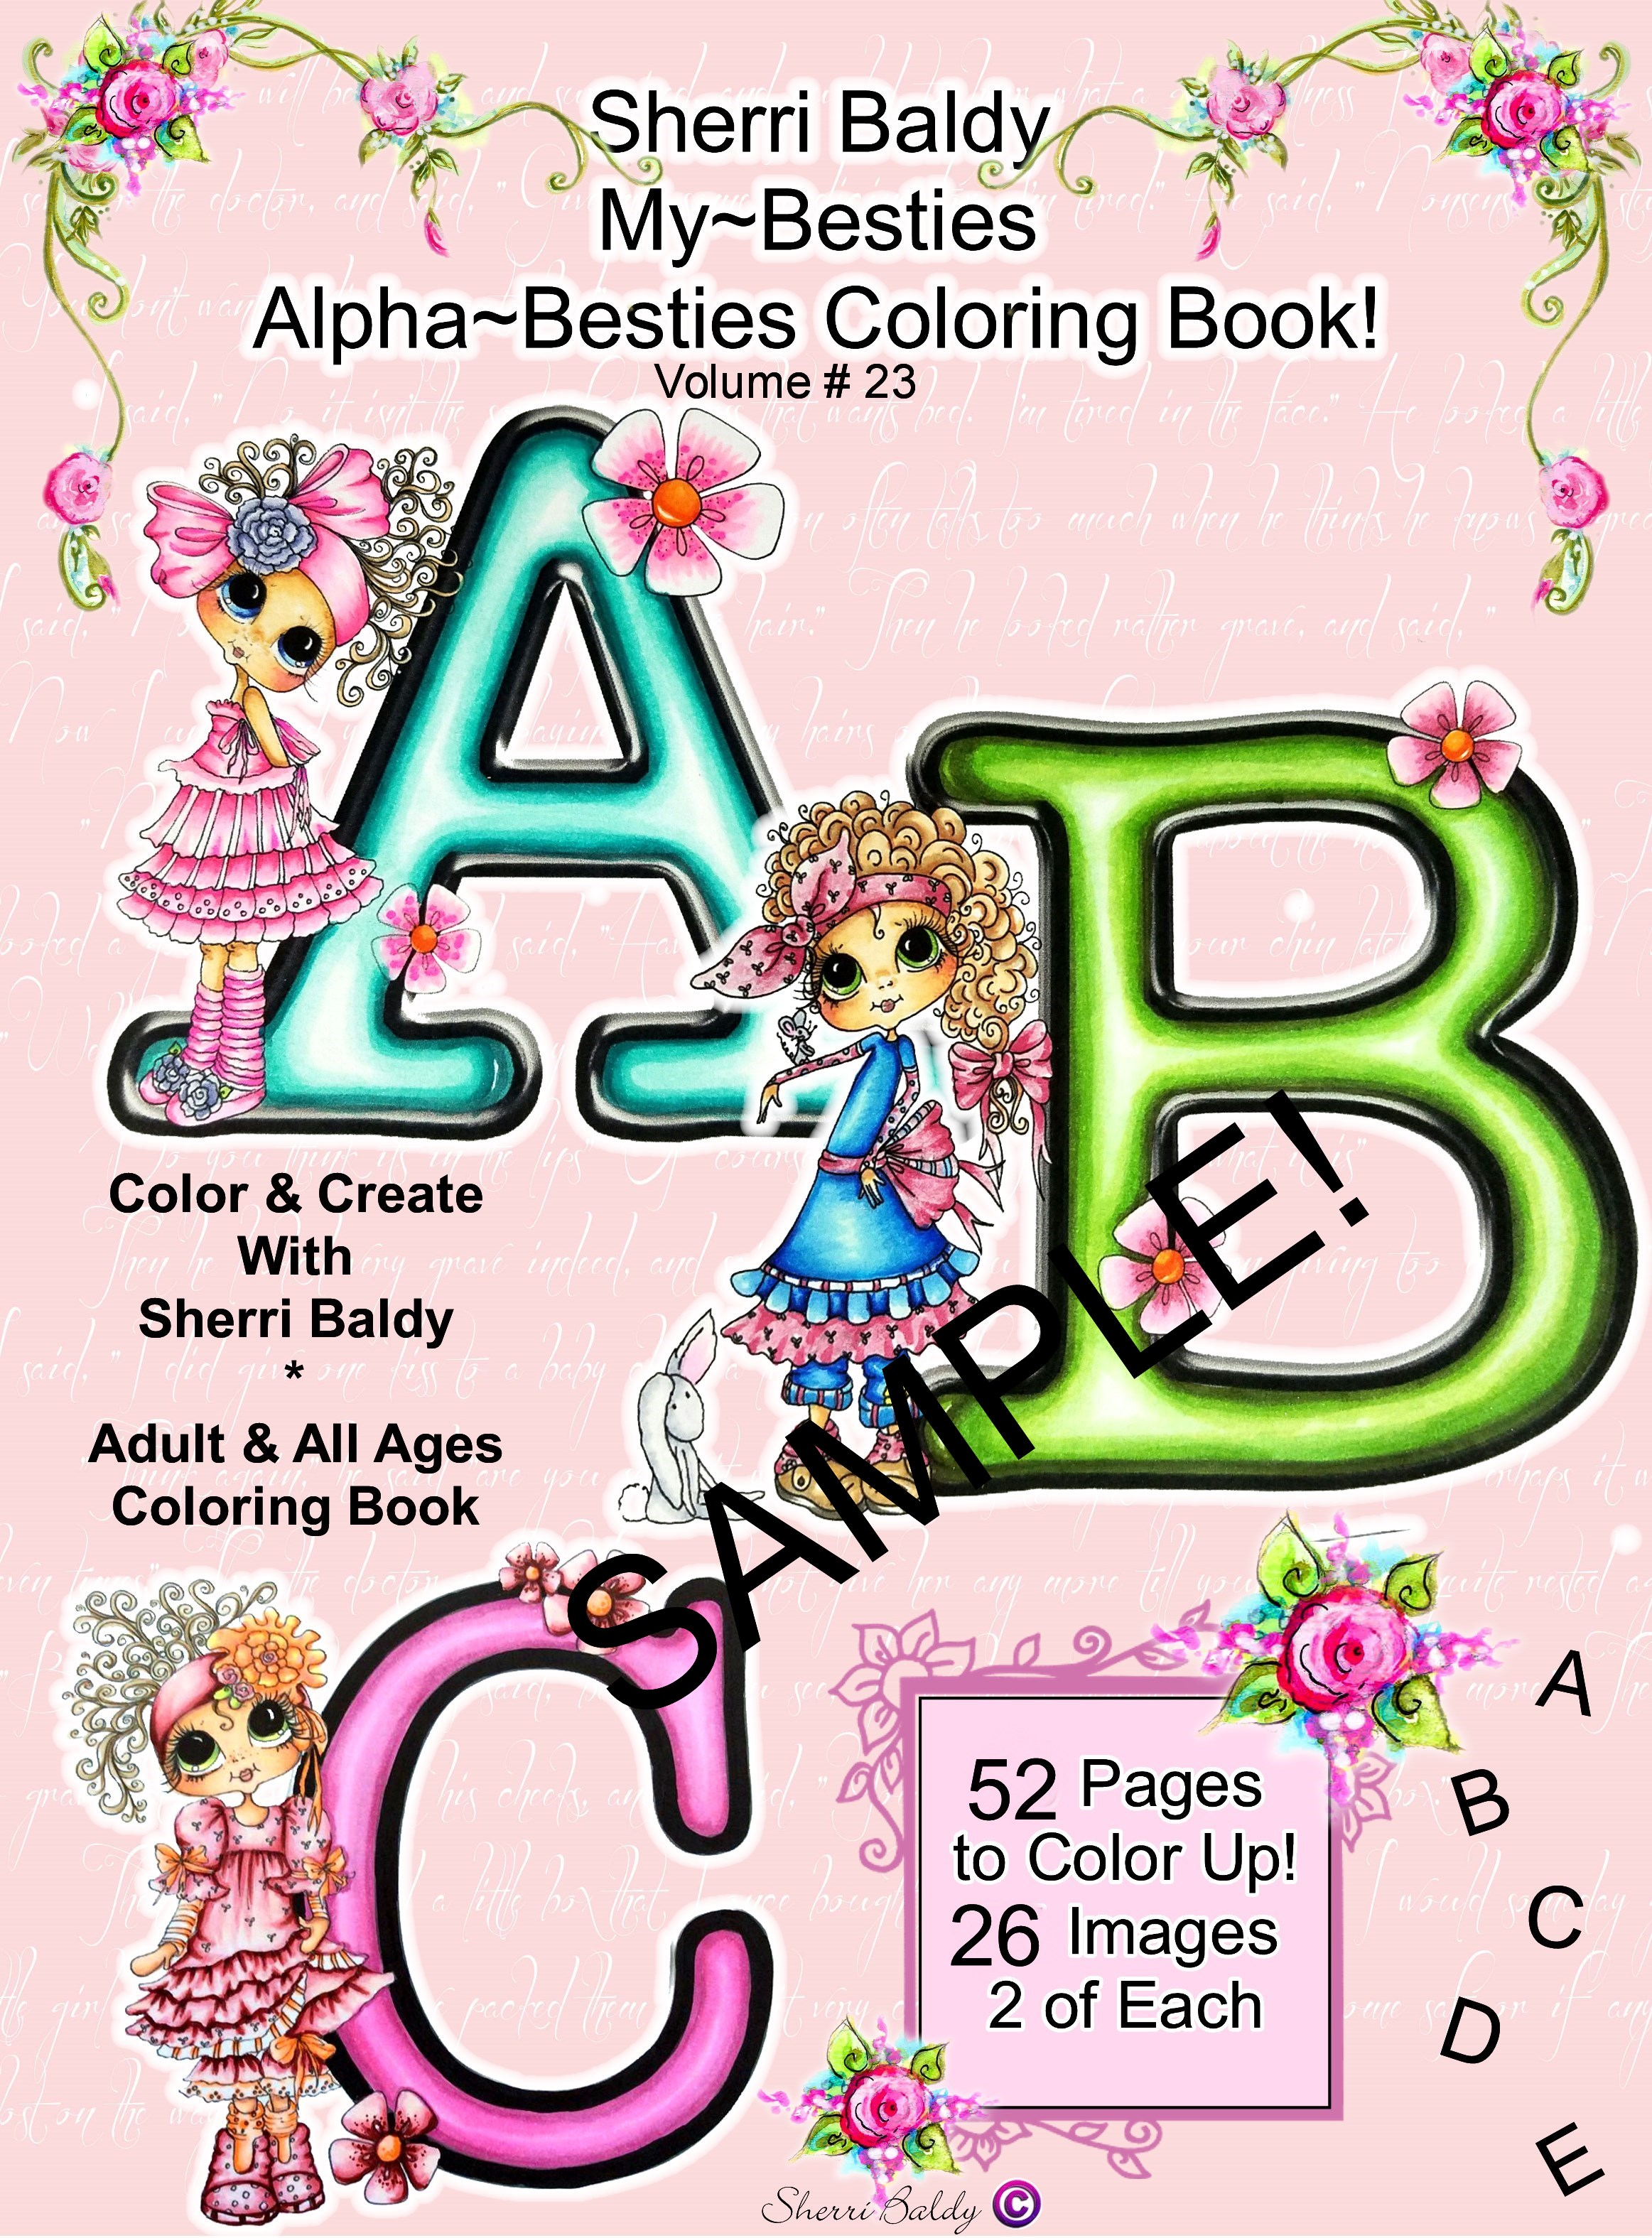 Digital Download PDF Coloring Books By The Artist Sherri Baldy My